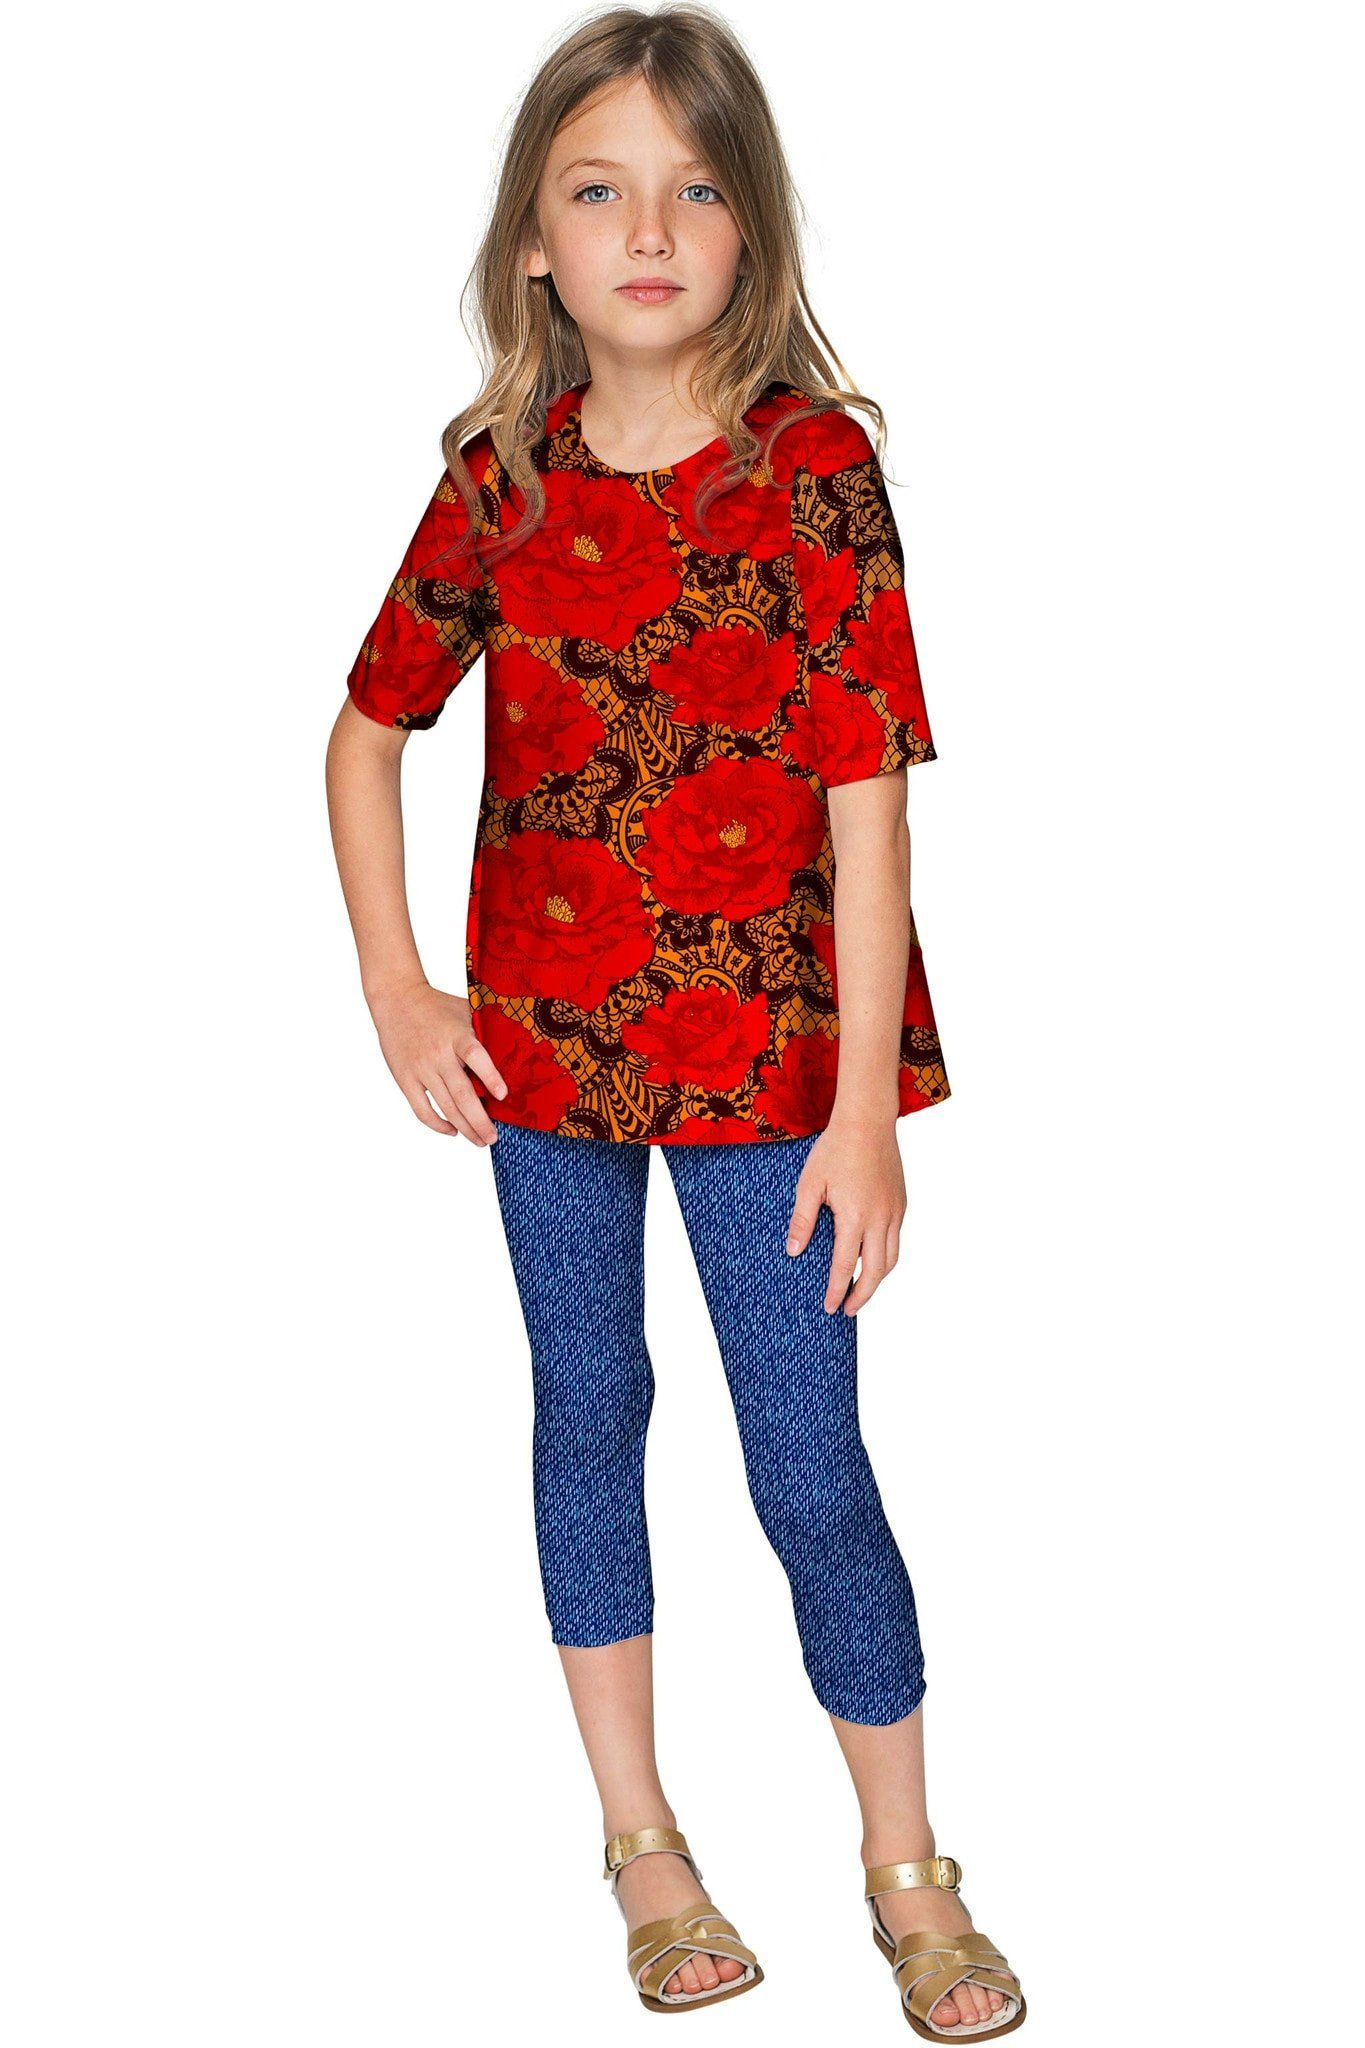 e6d1cd4b2dd Hot Tango Sophia Red Floral Sleeved Party Dressy Top - Girls ...